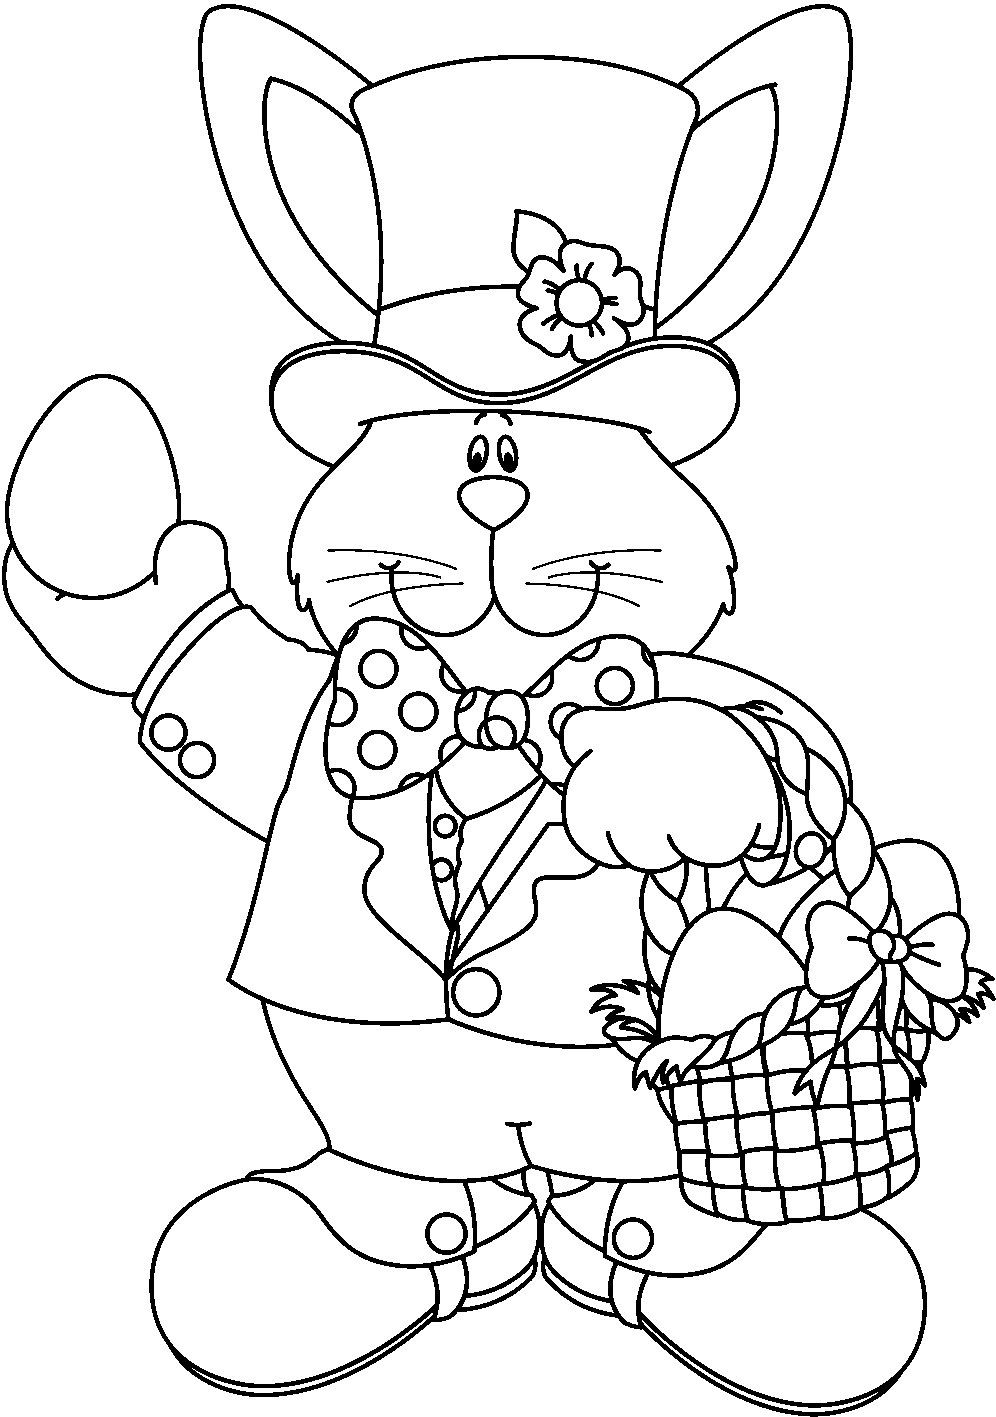 kids easter colouring pages photo easter drawings easter bunny colouring kids easter kids colouring pages